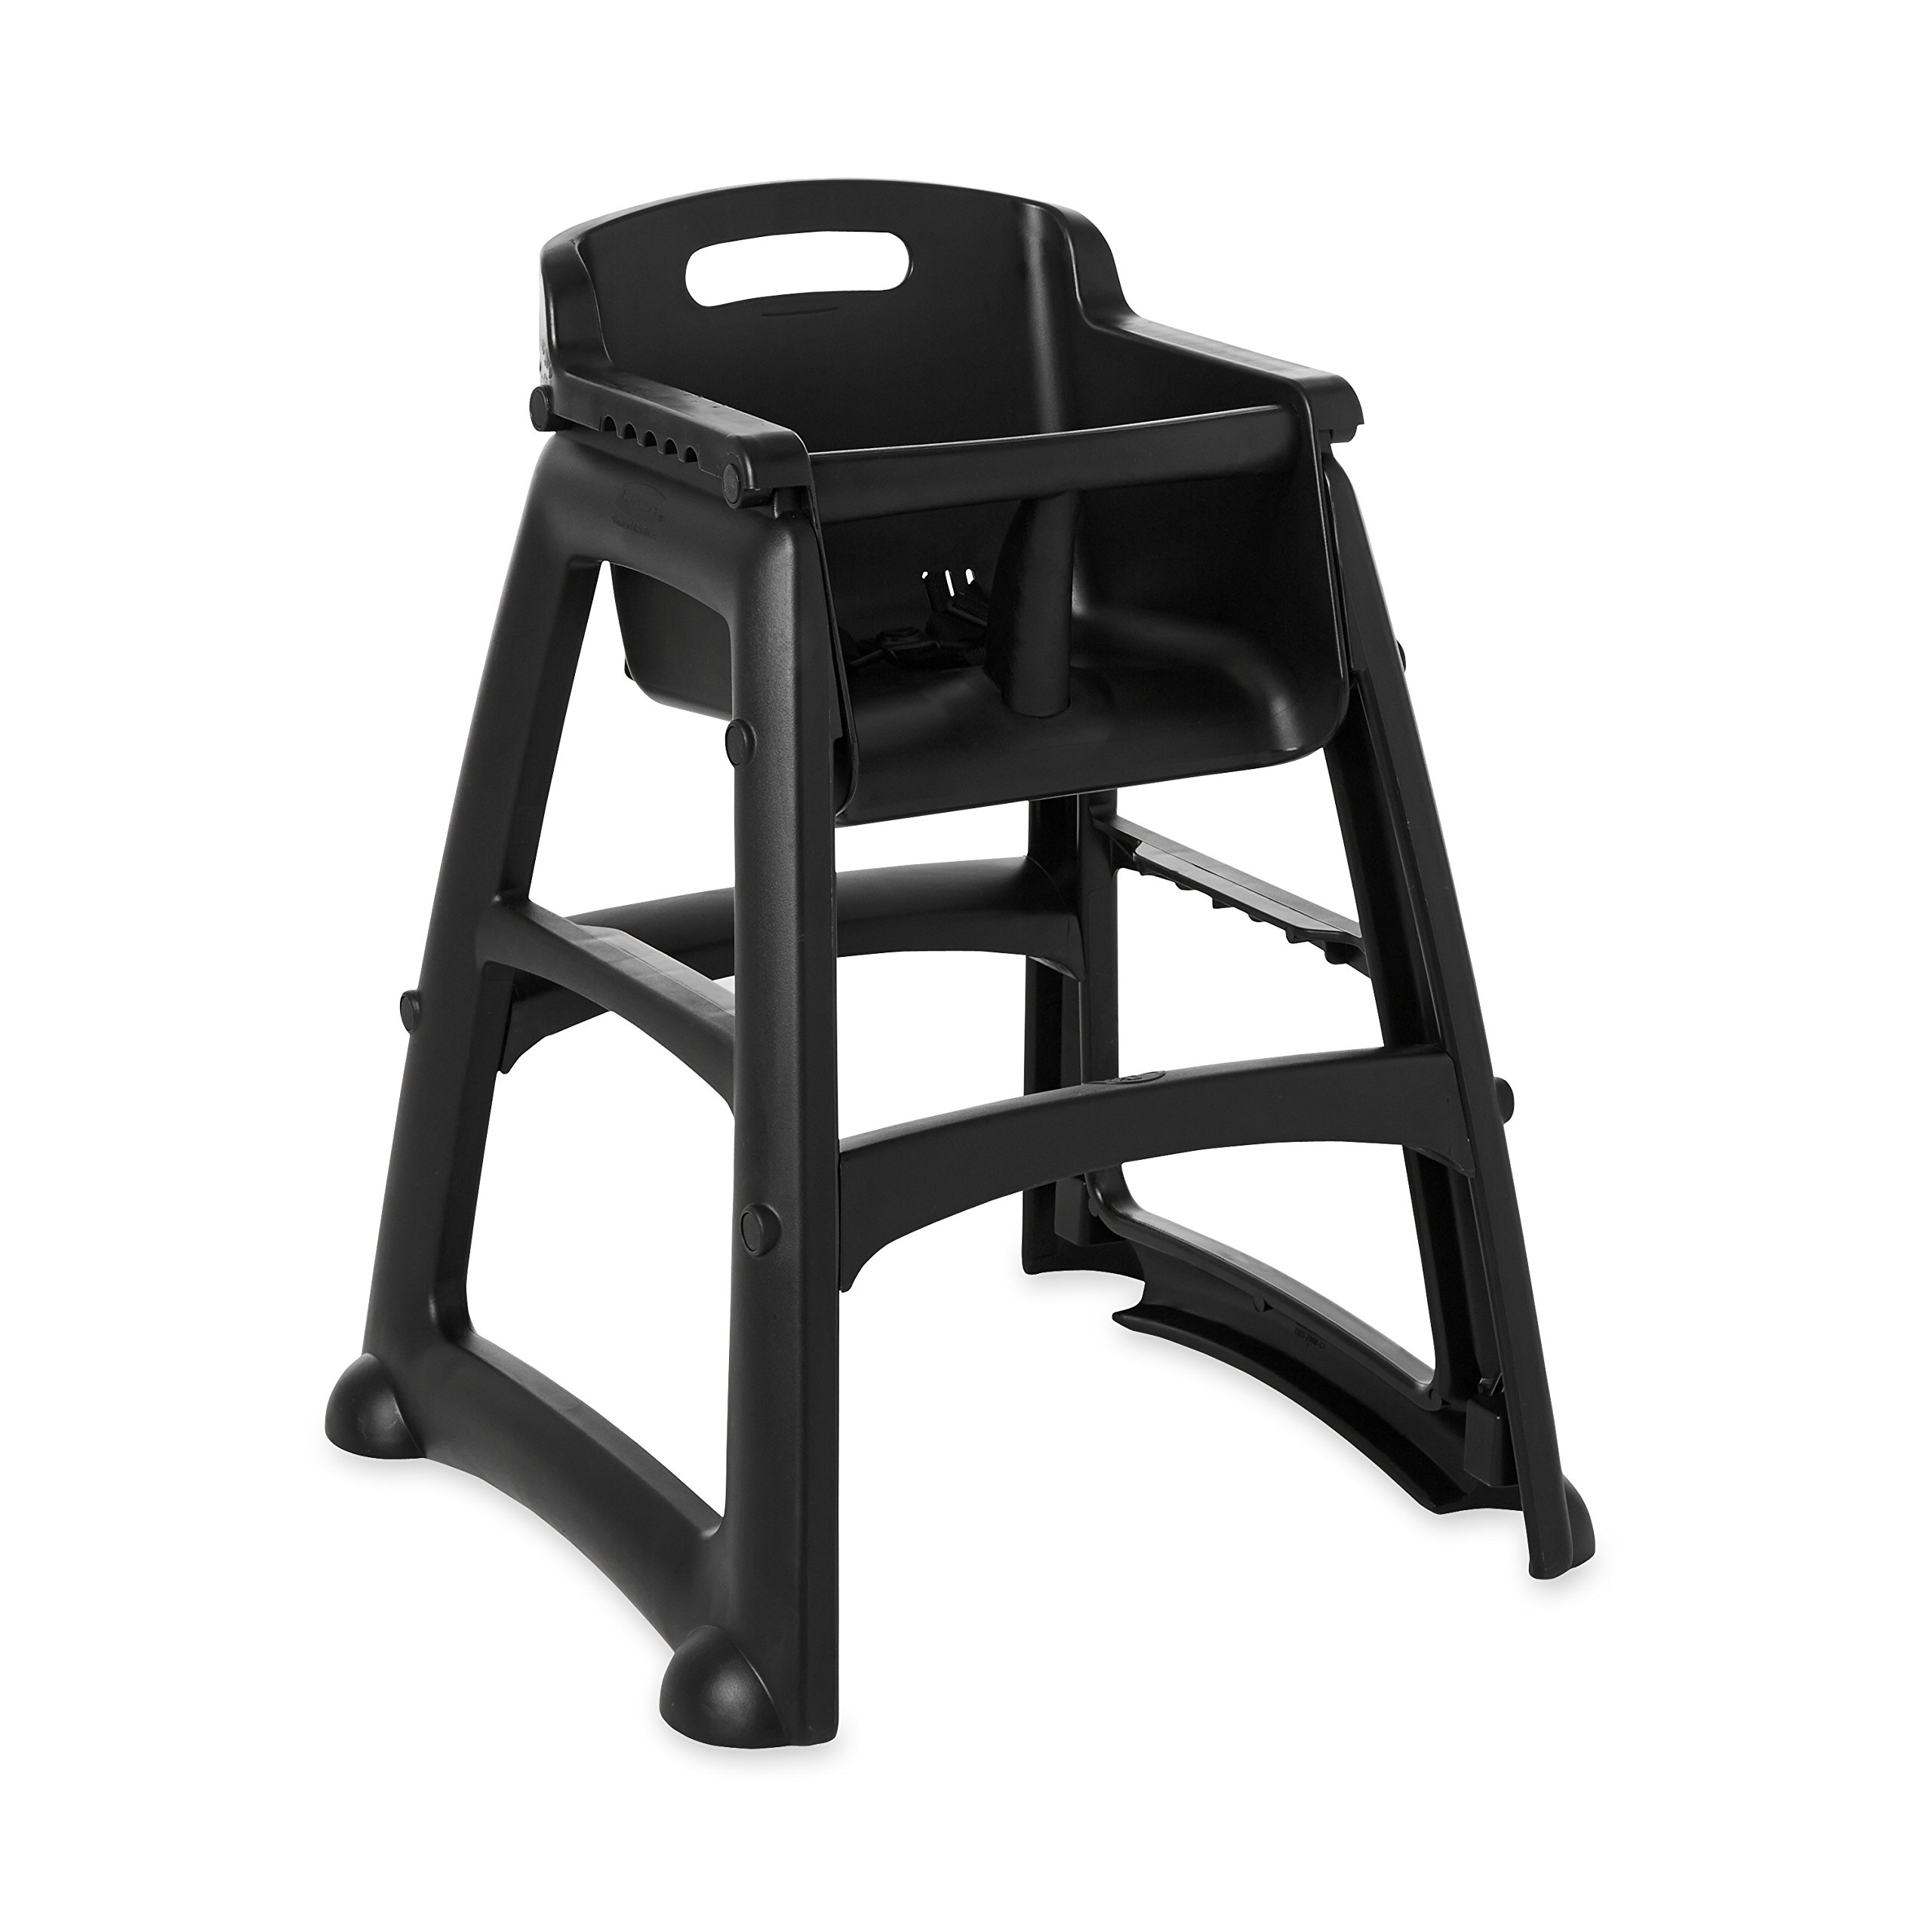 Rubbermaid Commercial Products Sturdy High-Chair for Child/Baby/Toddler, Unassembled, Black (FG781408BLA) by Rubbermaid Commercial Products